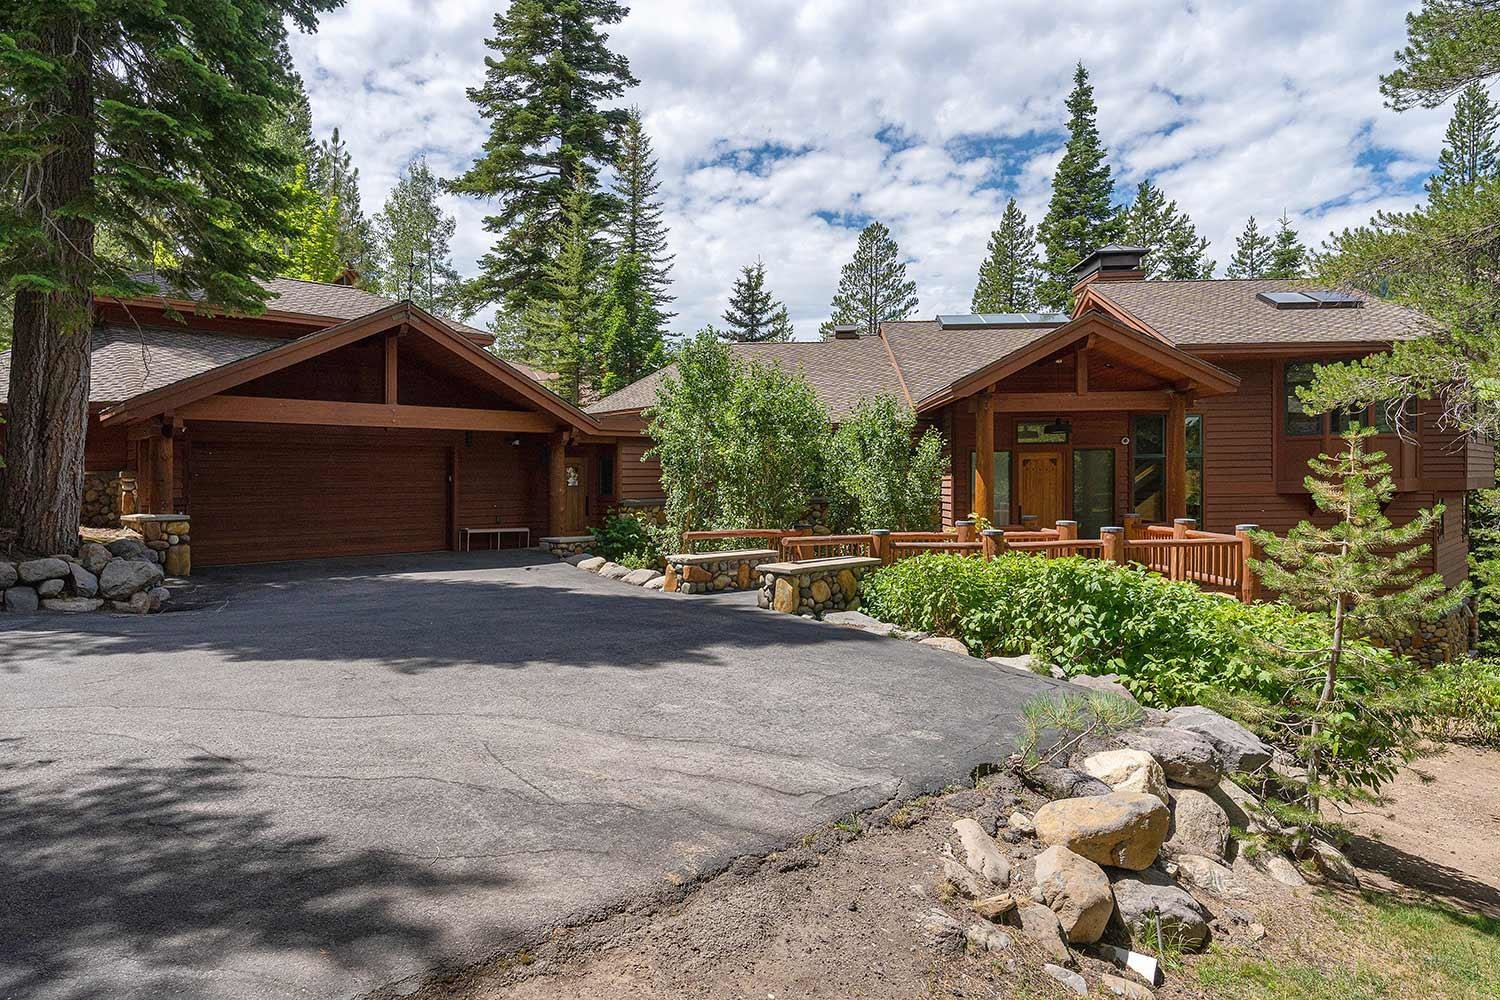 Image for 3058 Mountain Links Way, Olympic Valley, CA 96146